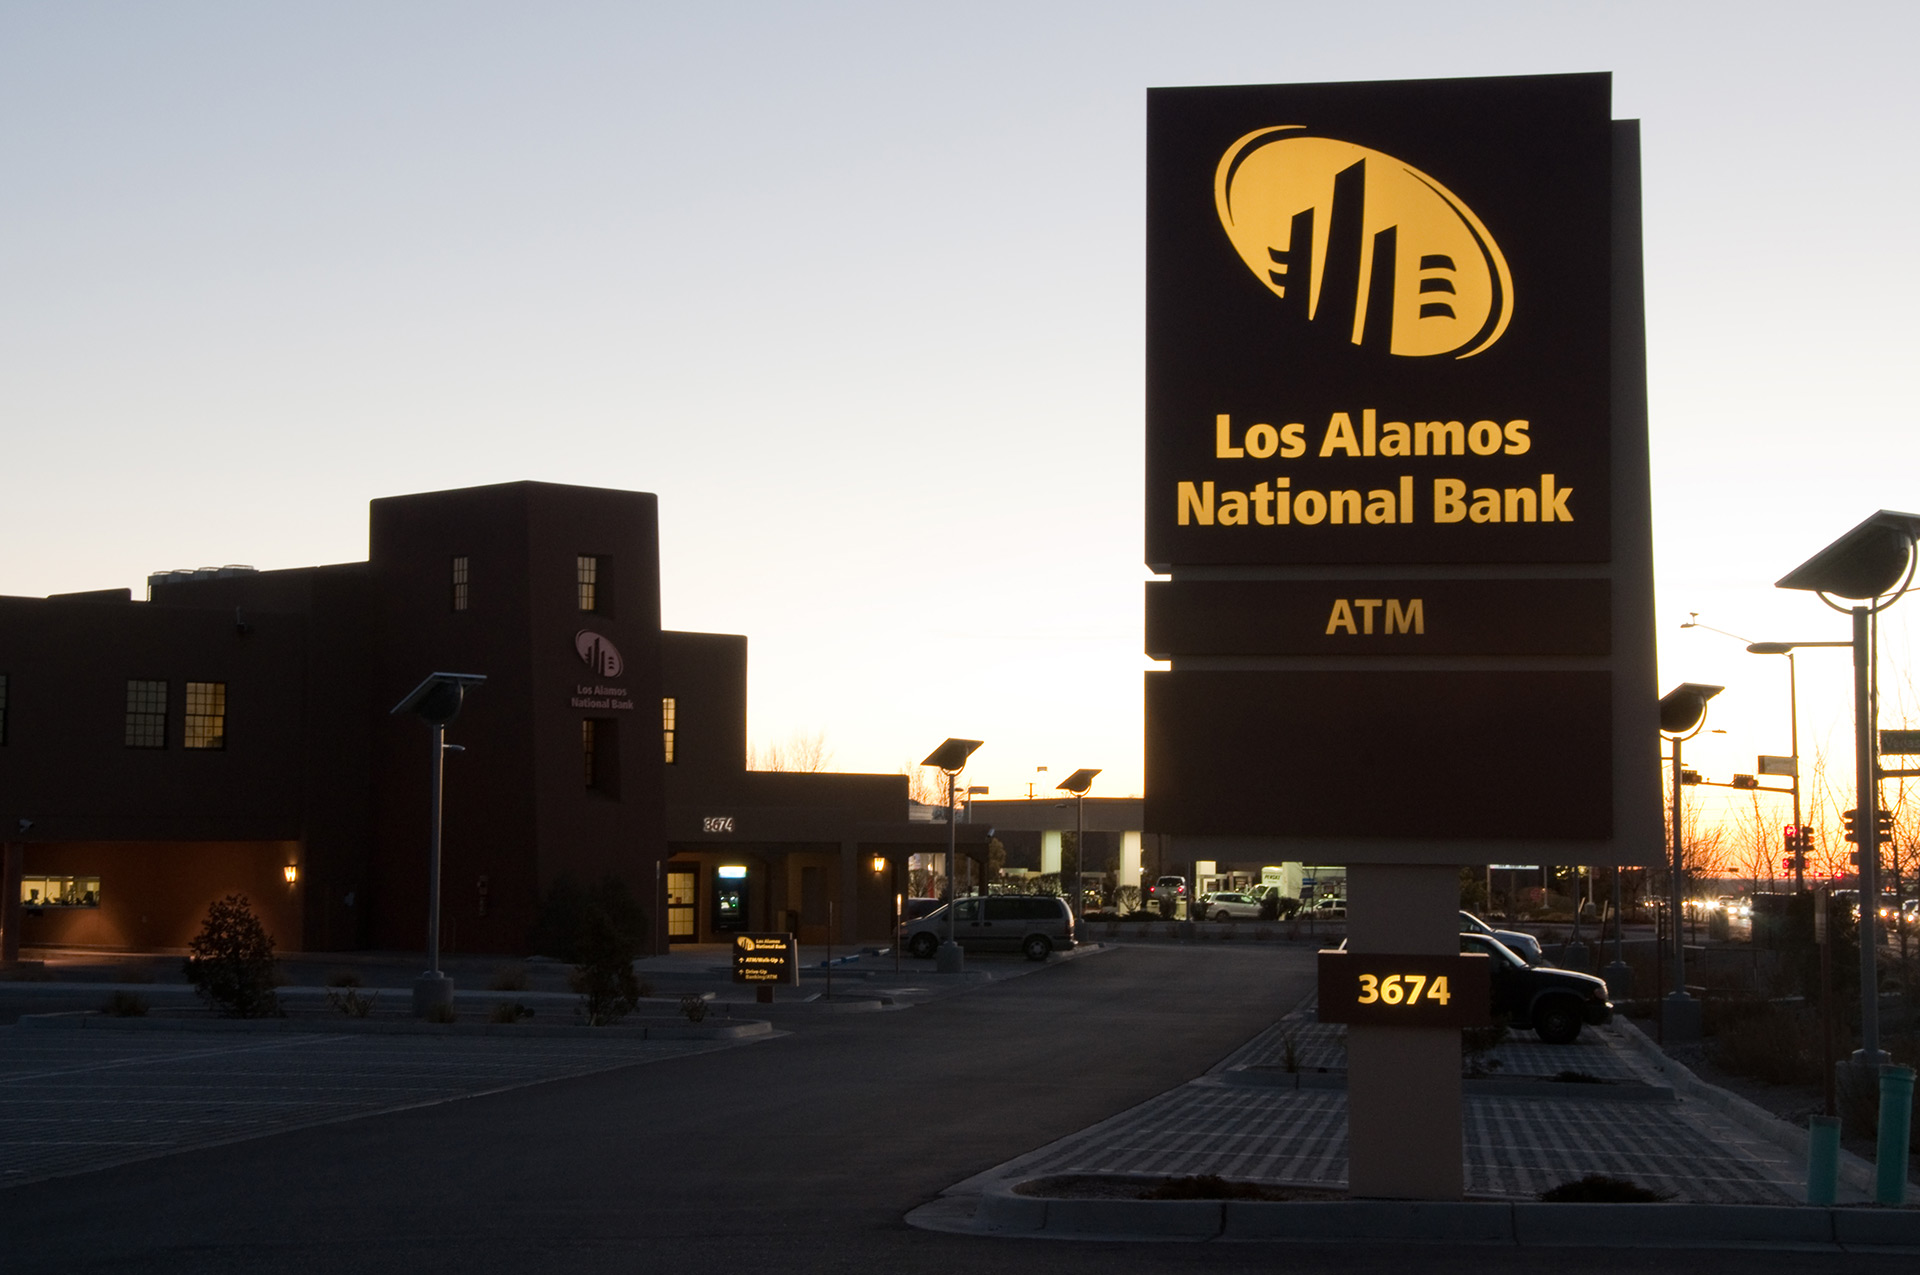 Los Alamos National Bank - Monument